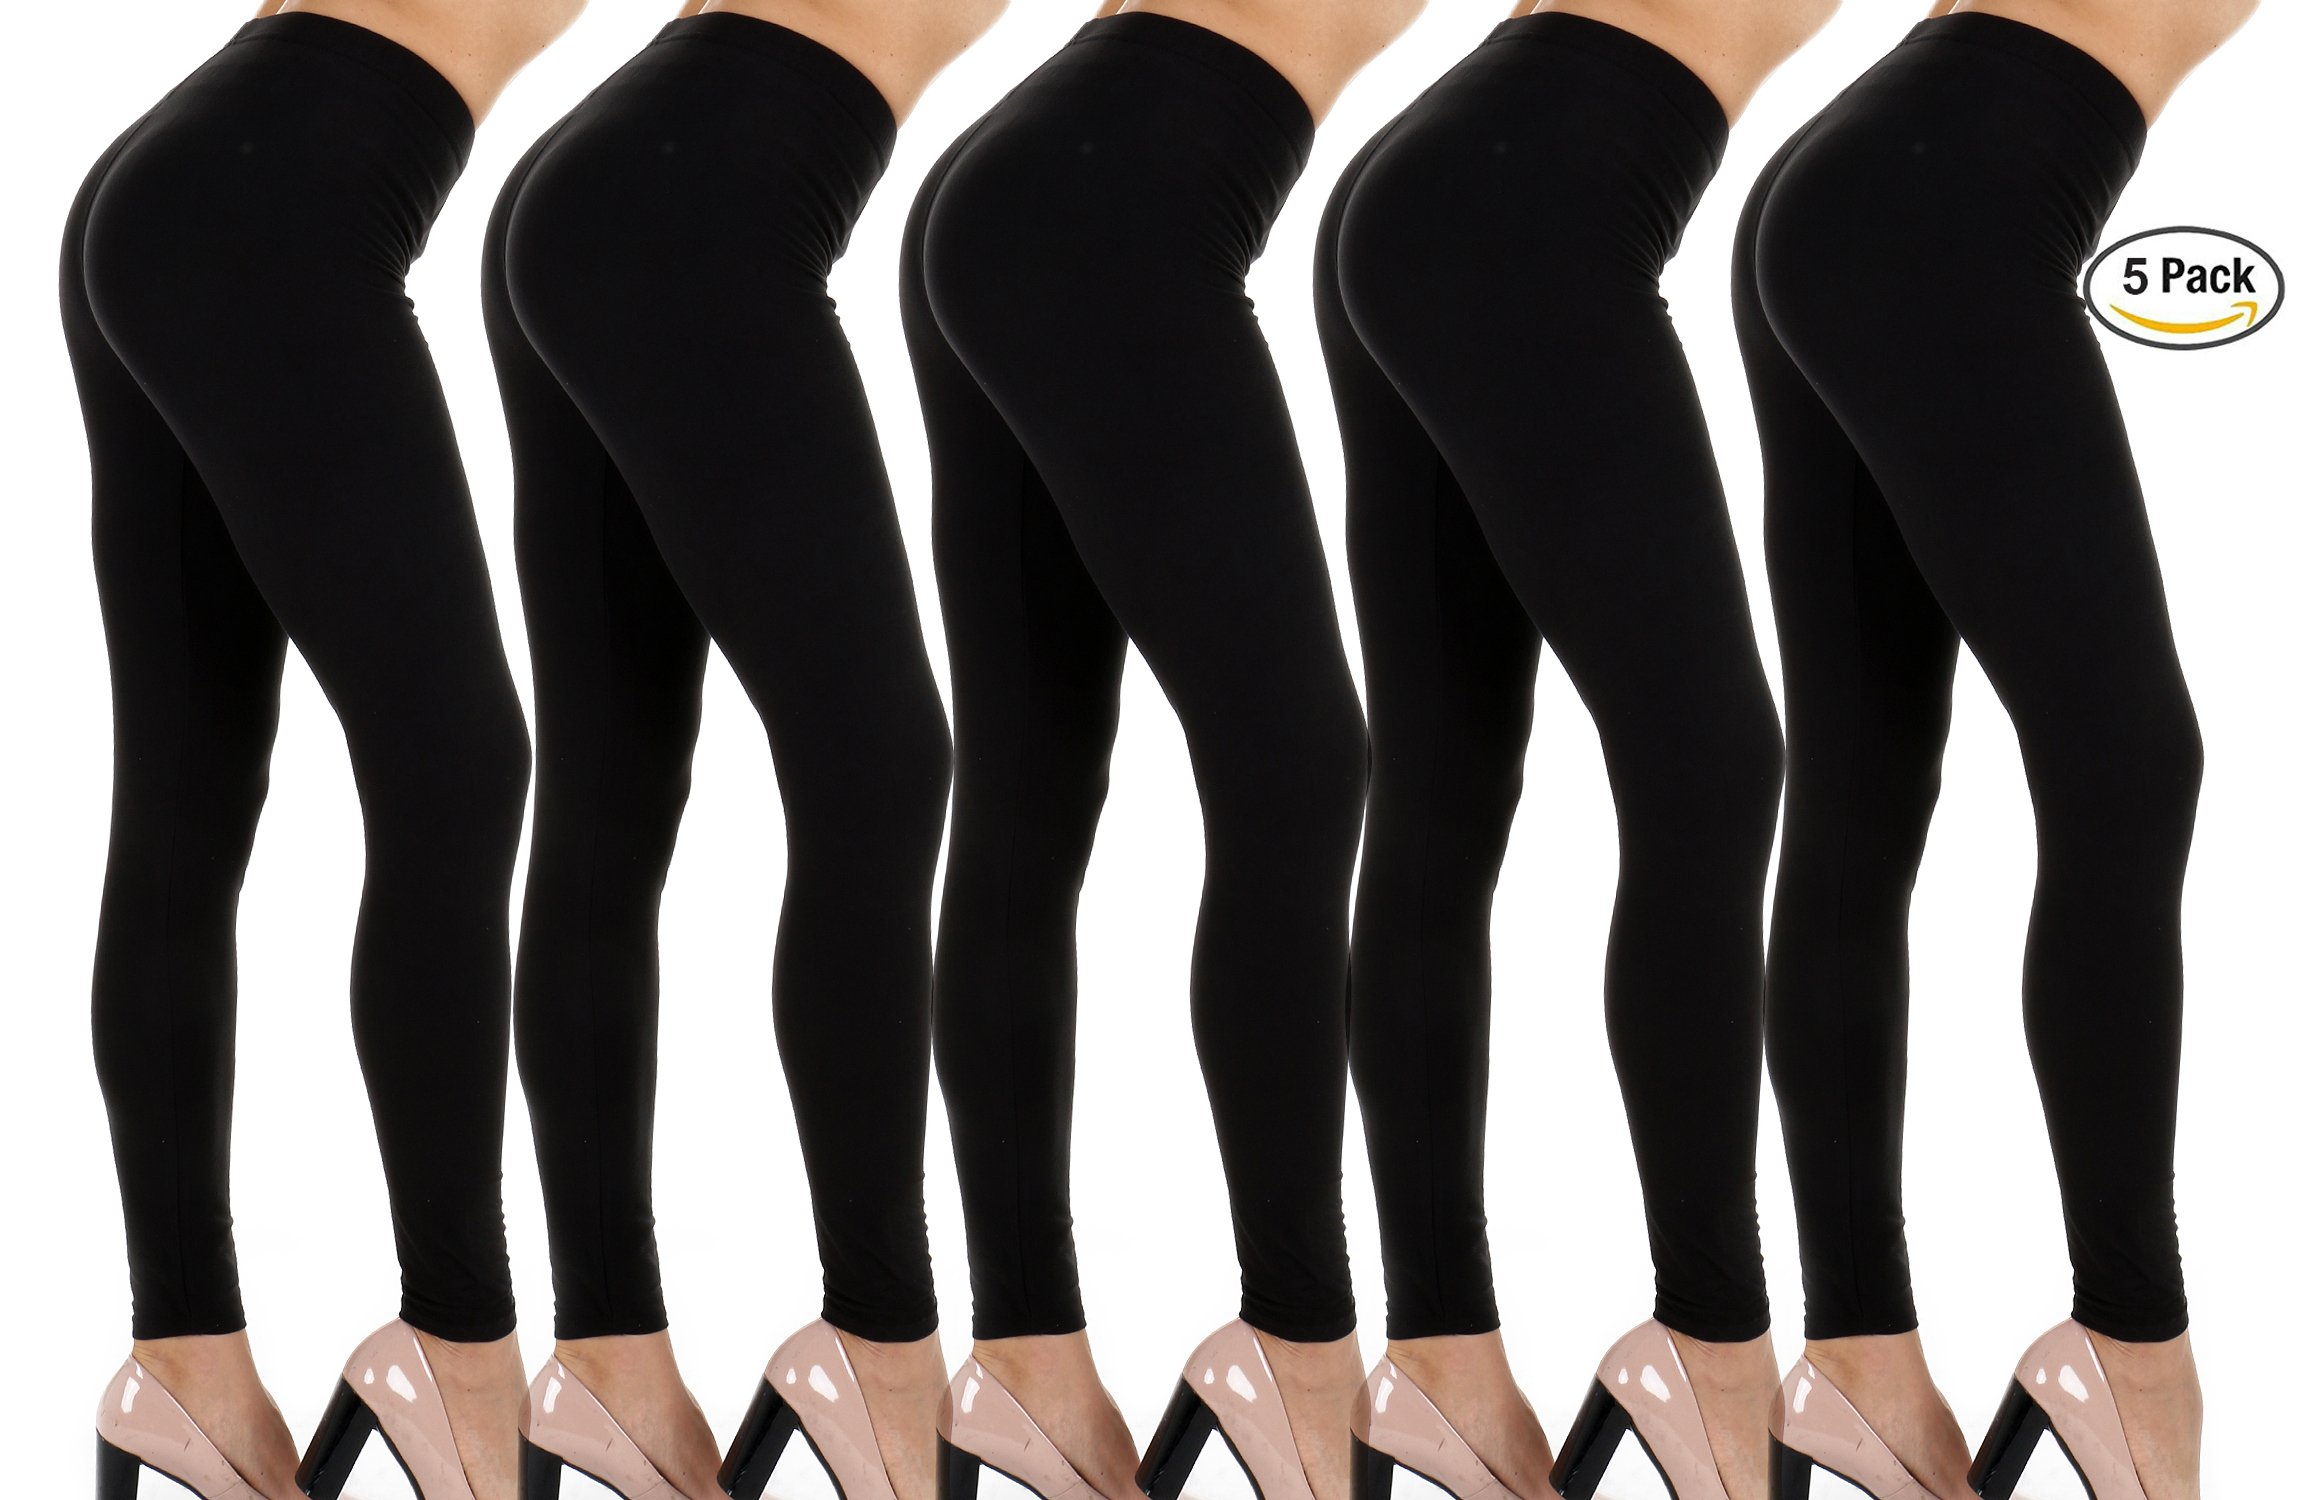 Super Soft- 4way Stretch-Non See Thru- Light Weight Premium Quality Leggings– Camo, Prints & Solid Colors (OneSize, 5-Pack (5 Black))